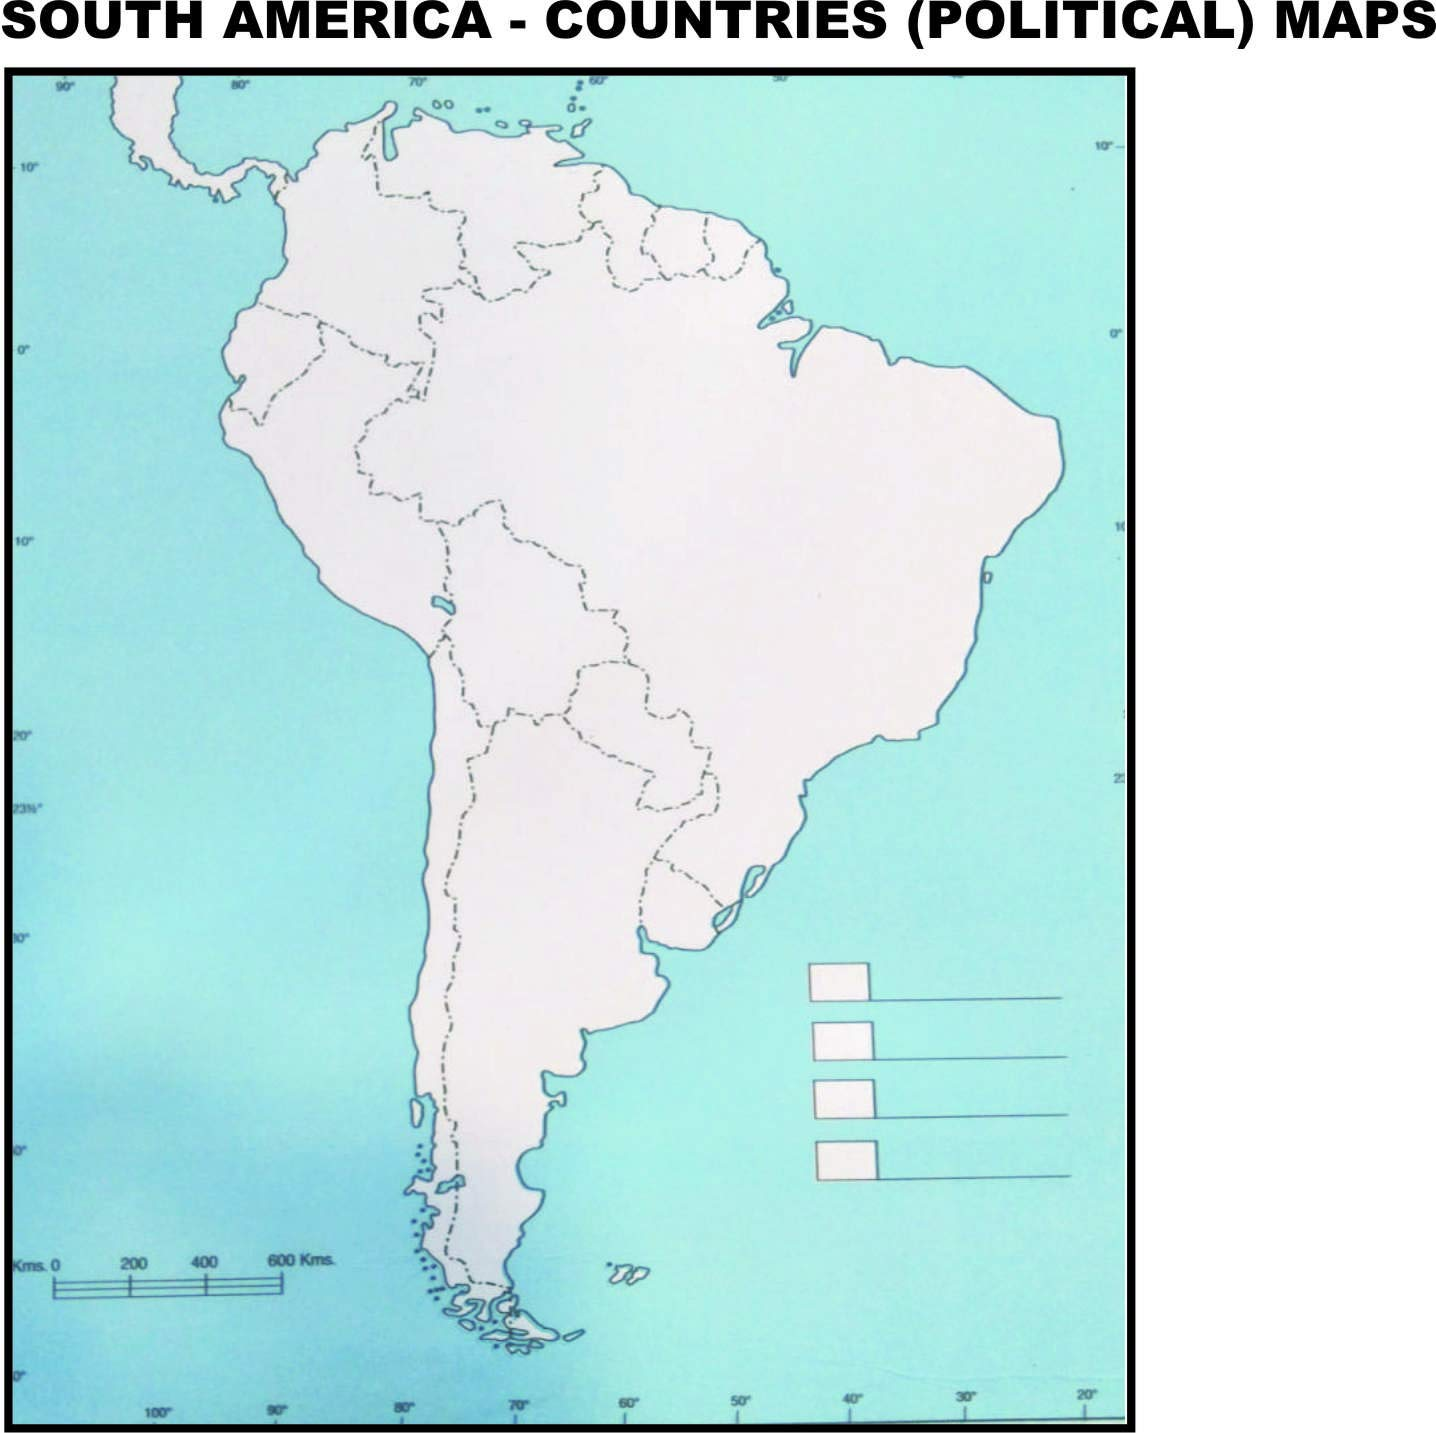 South America Countries Political Practice Maps Set Of 100 Maps